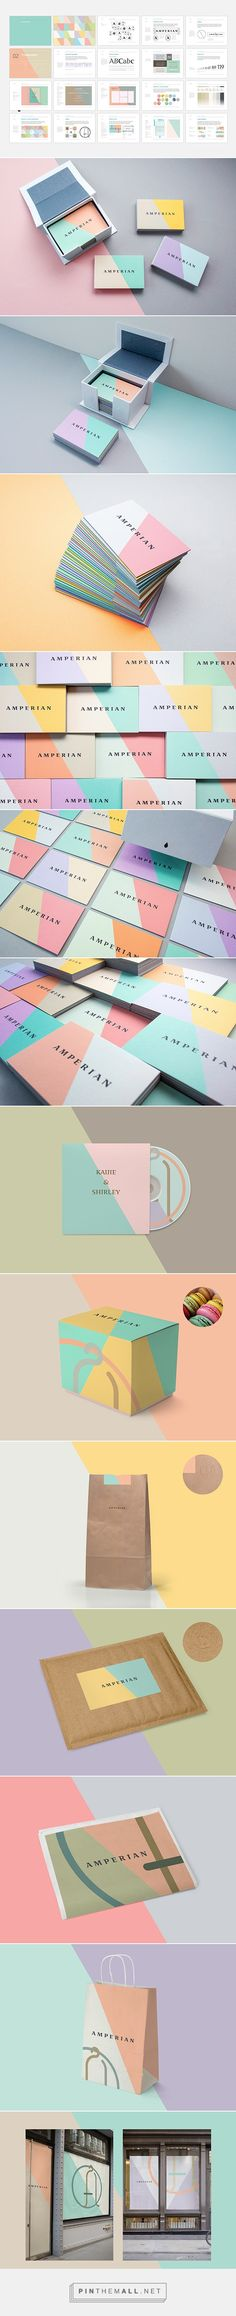 ++ Color blocking #stationary design. Love the business cards and packaging especially.